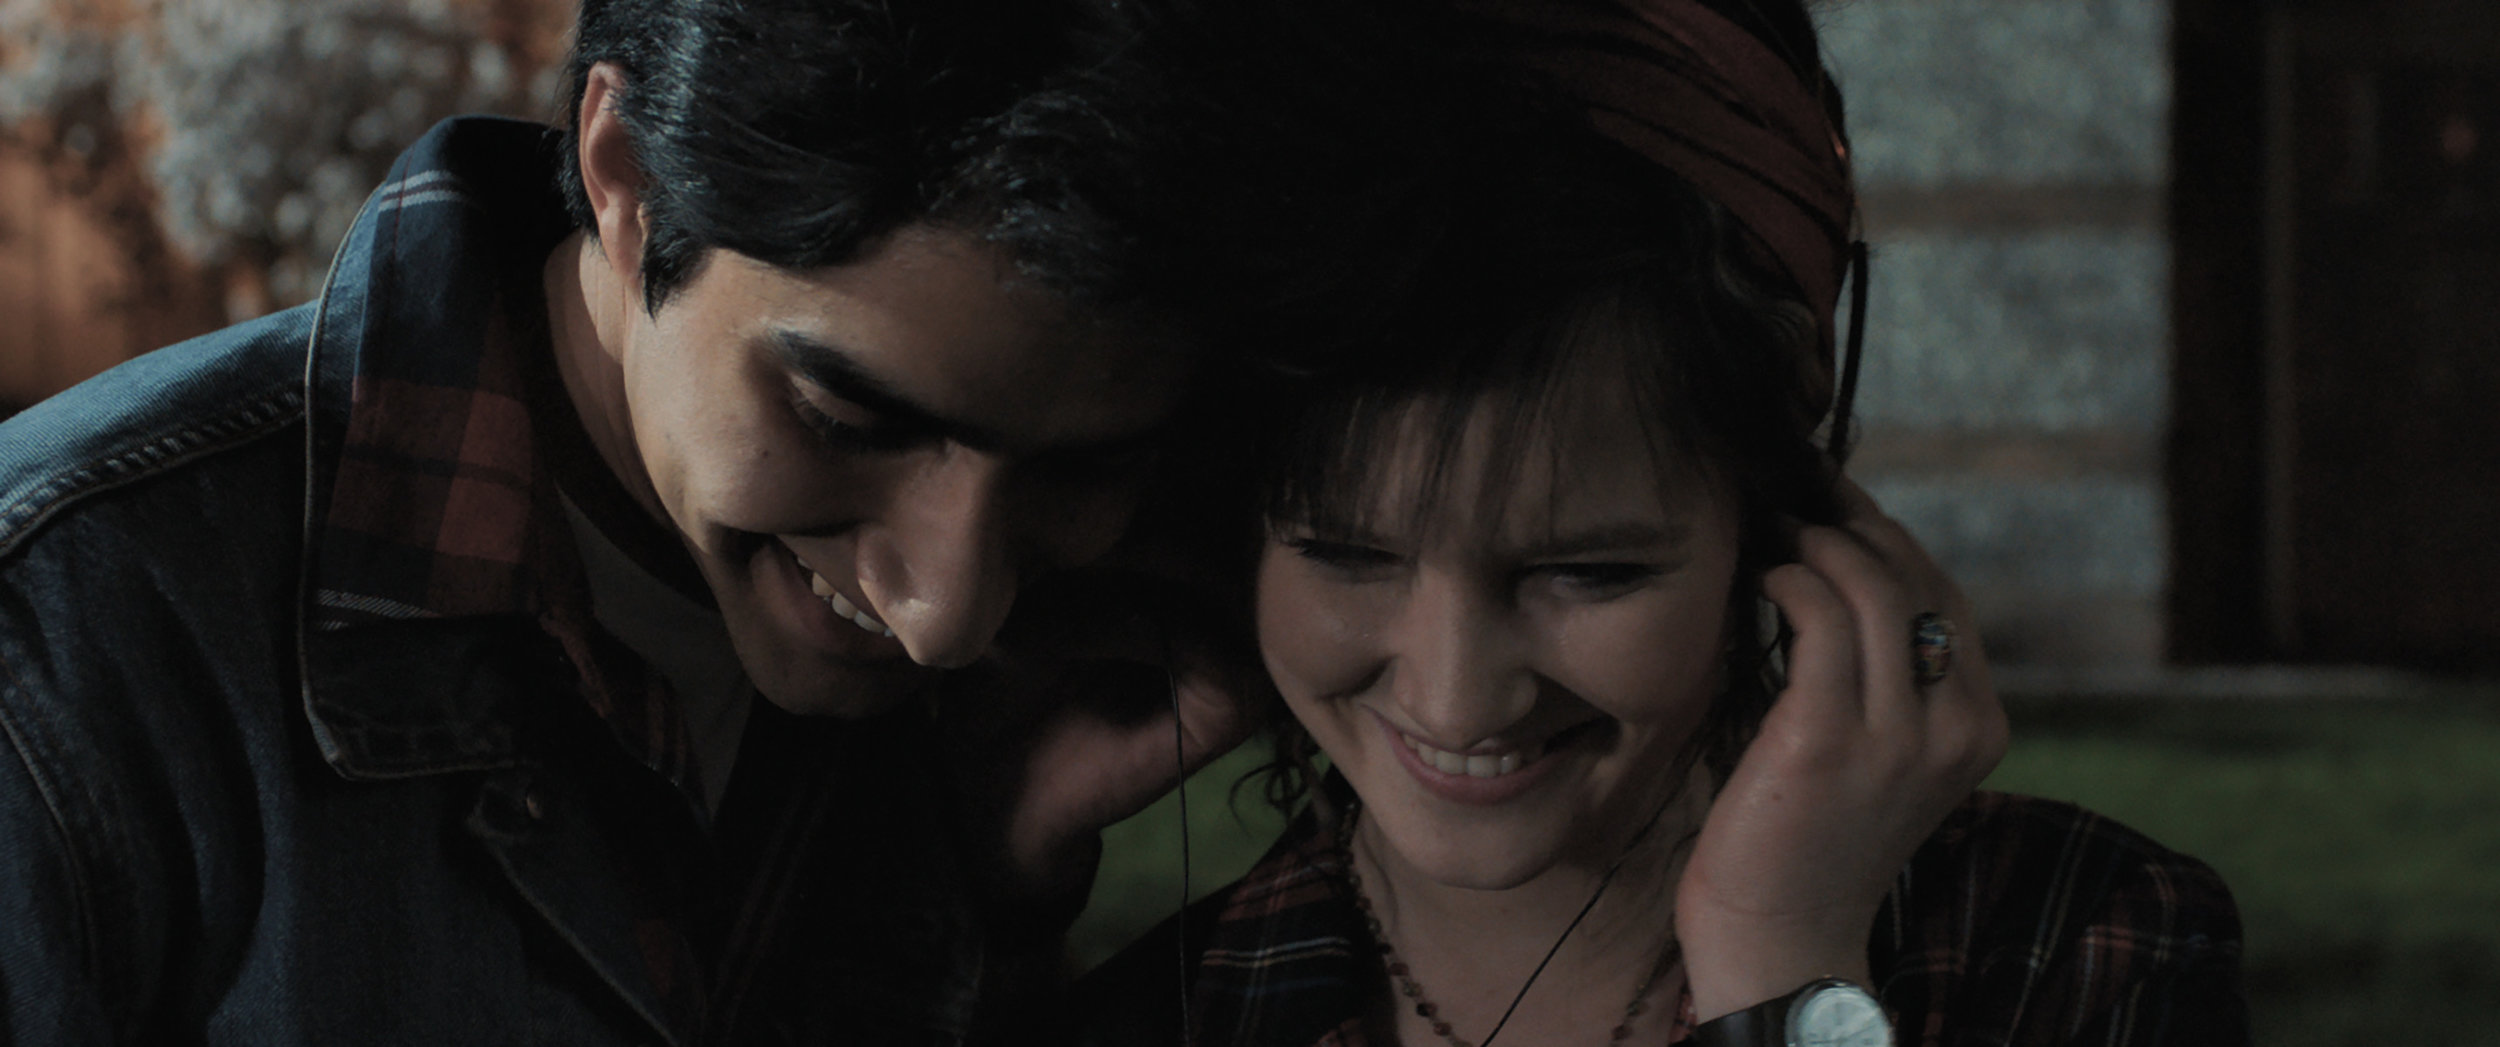 """Javed (Viviek Kalra, left) and Eliza (Nell Williams) share headphones to listen to Bruce Springsteen, in a moment from the coming-of-age story """"Blinded by the Light."""" (Photo courtesy of Warner Bros. Pictures.)"""